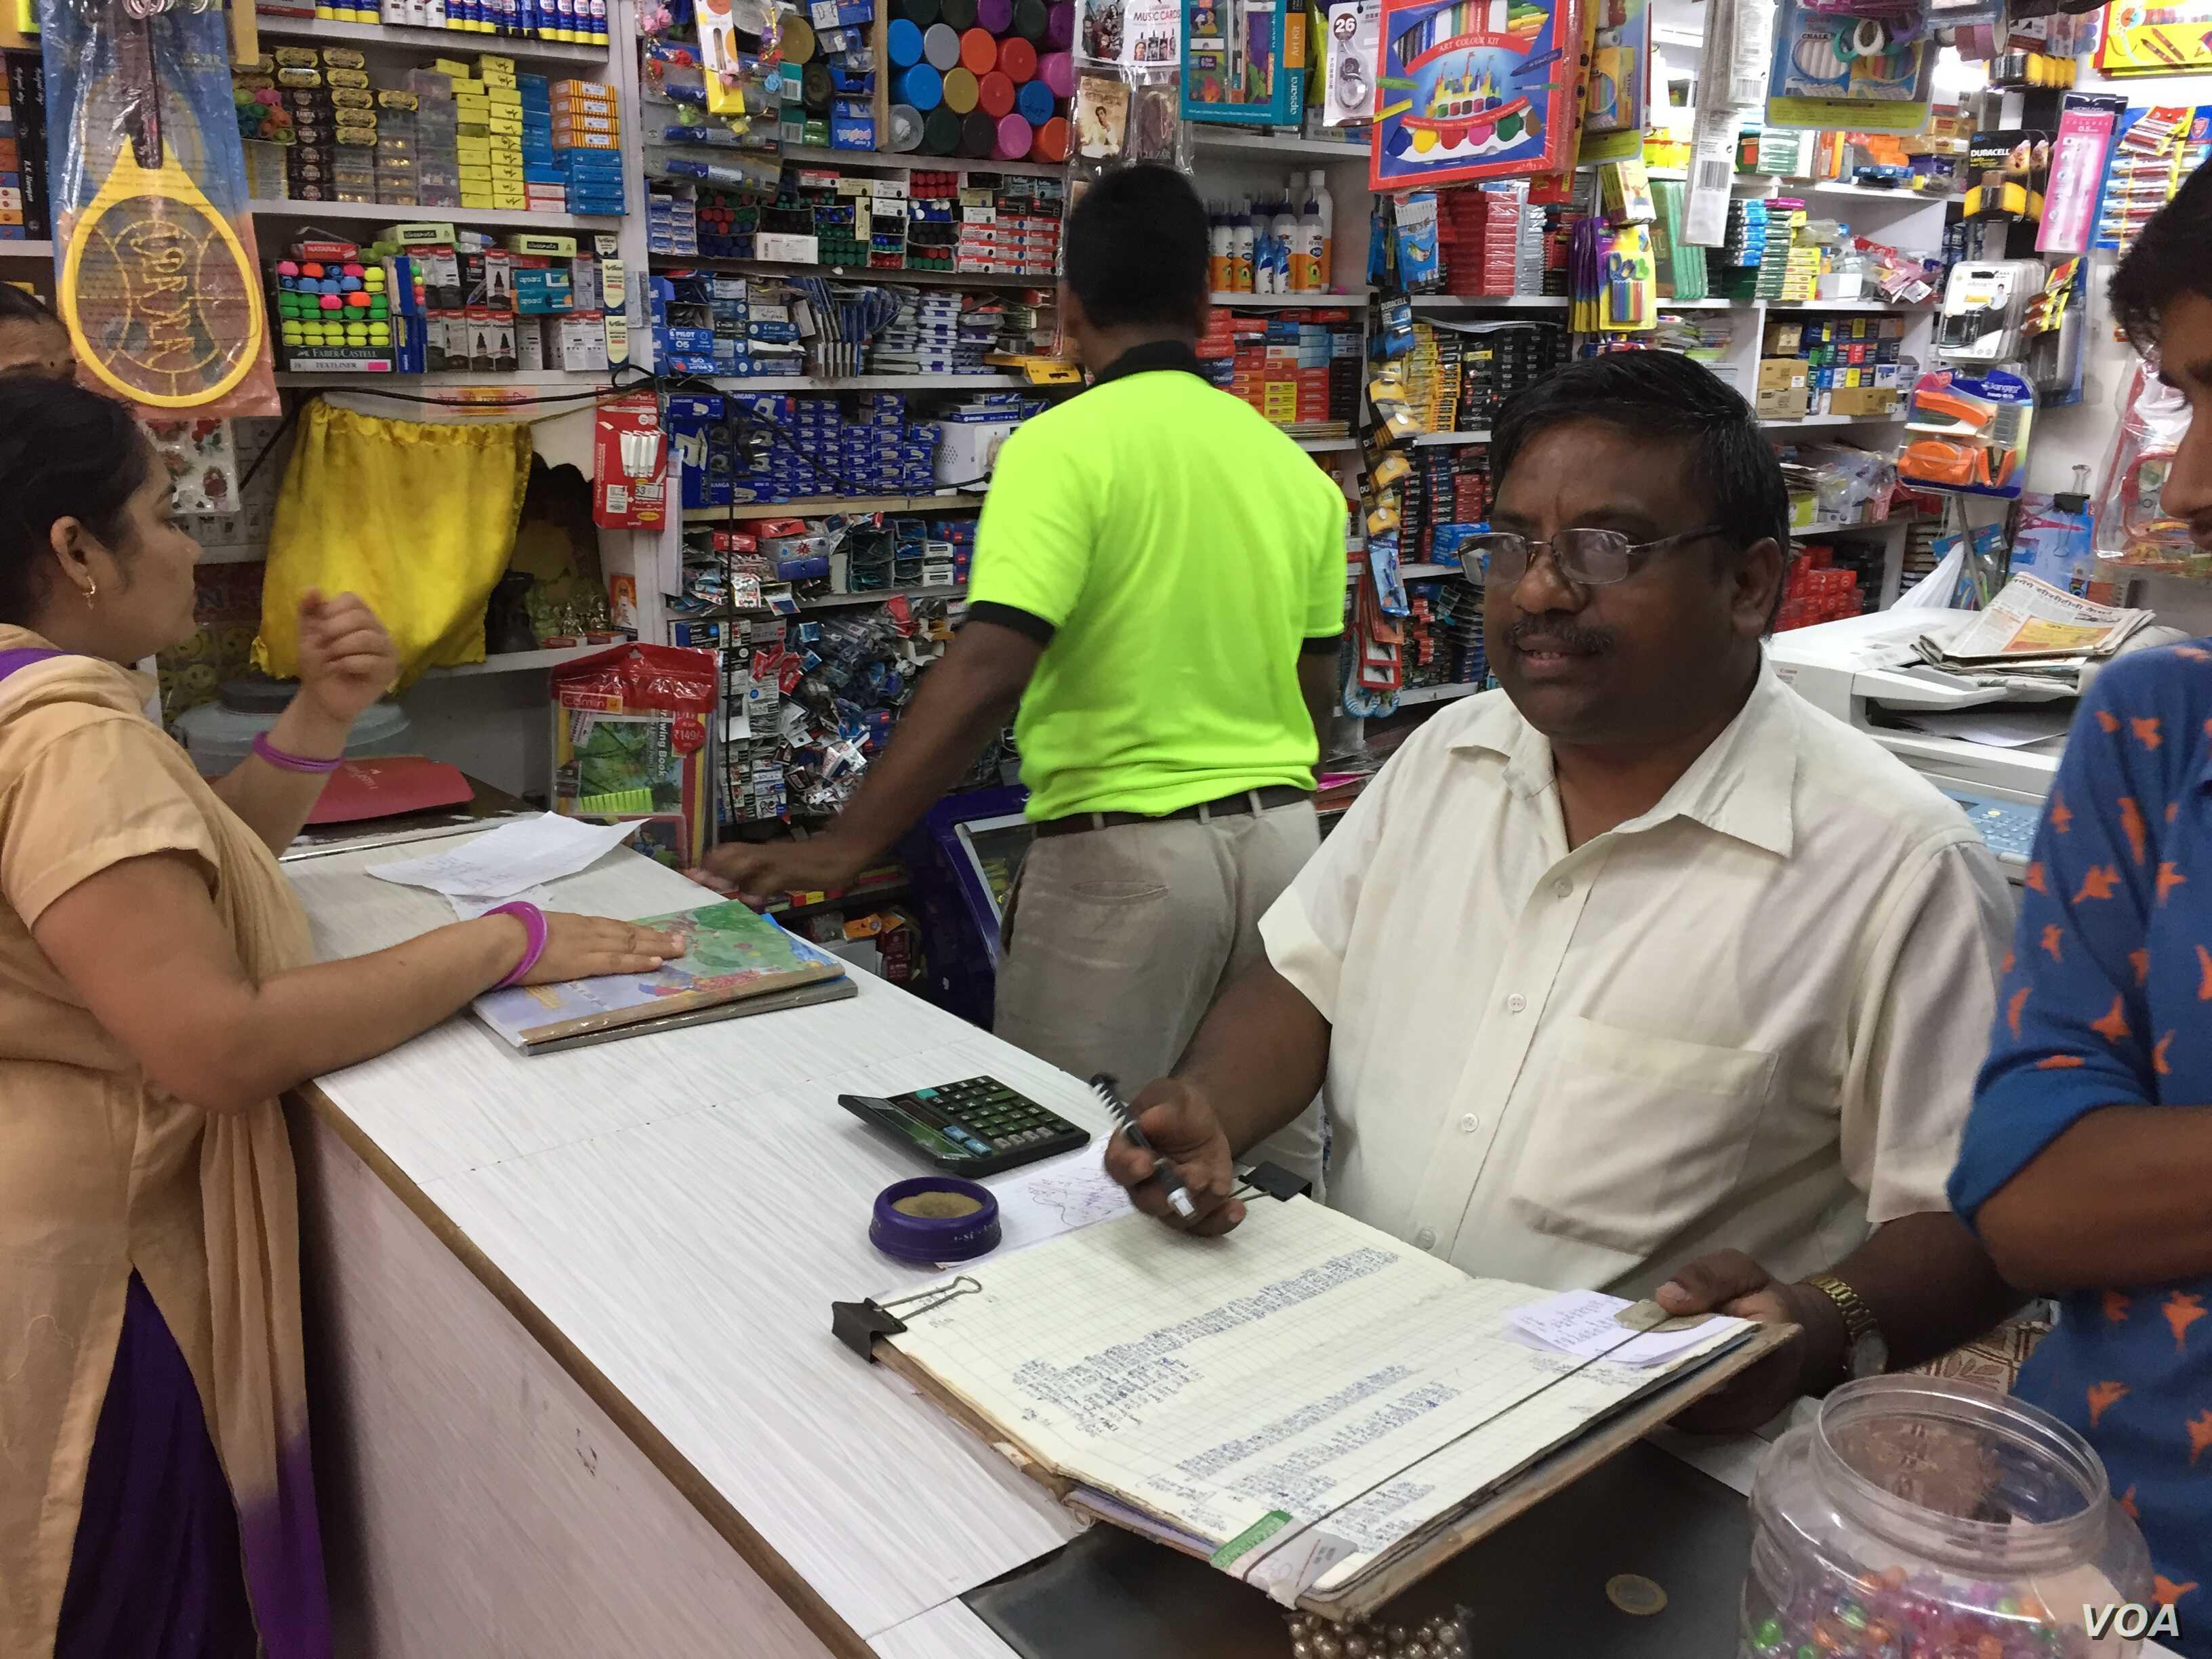 Store owner Vimal Jain in New Delhi, who like millions of shopkeepers, maintained records in ledgers and issued paper receipts, says the transition to GST will disrupt his business, just as the currency ban did last November.